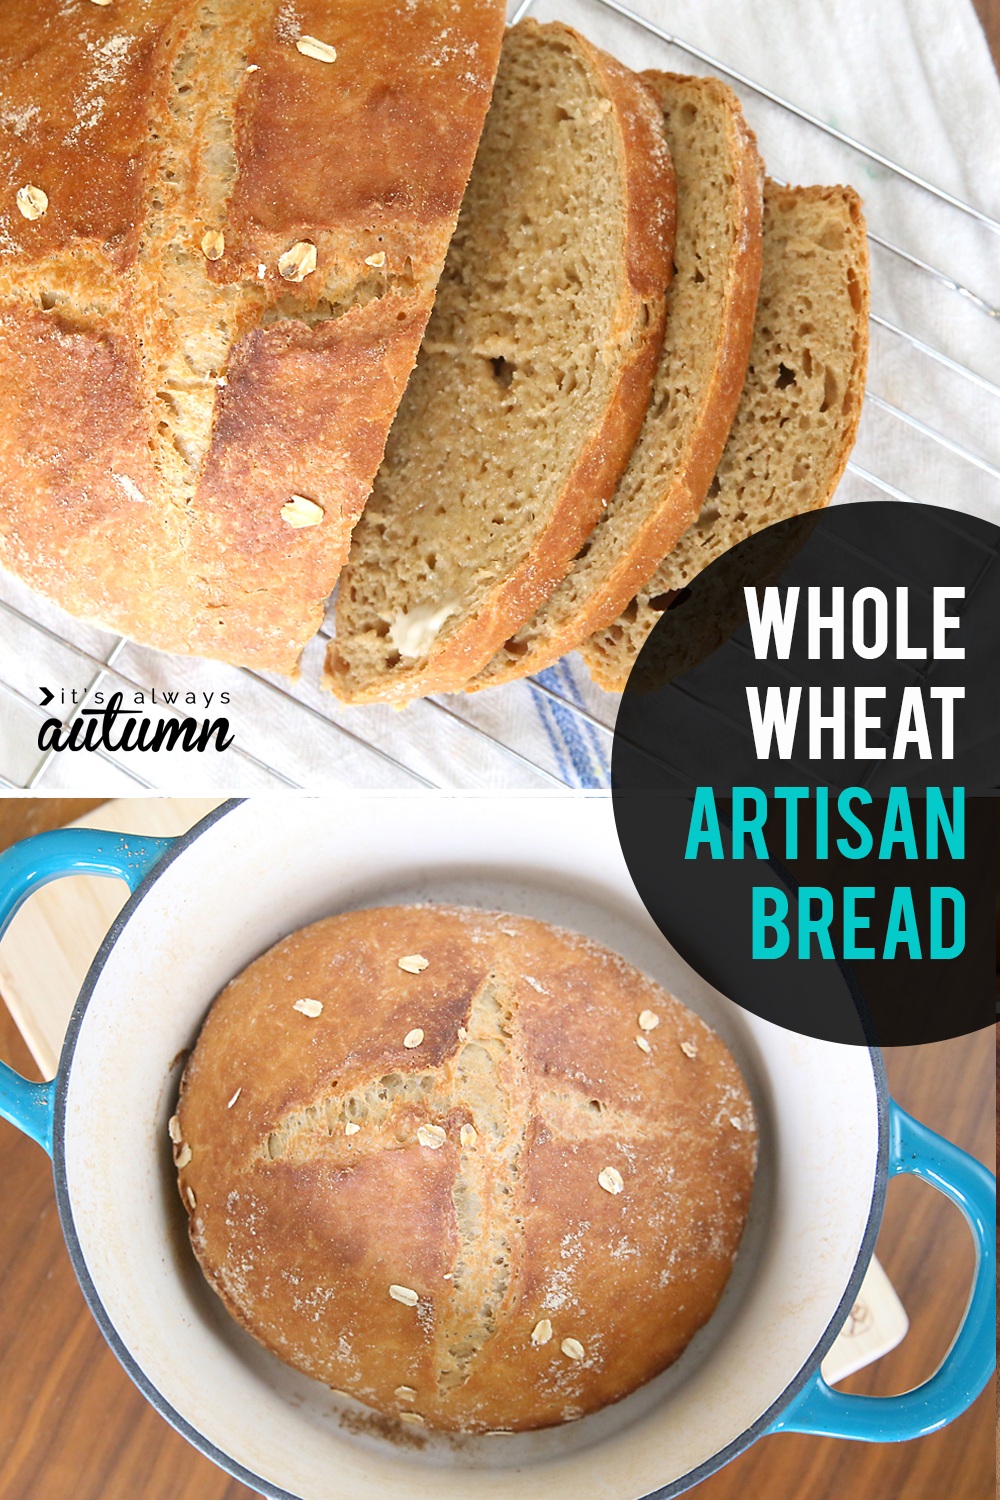 This whole wheat artisan bread only takes five ingredients! Plus it's super easy to make and doesn't even require kneading.